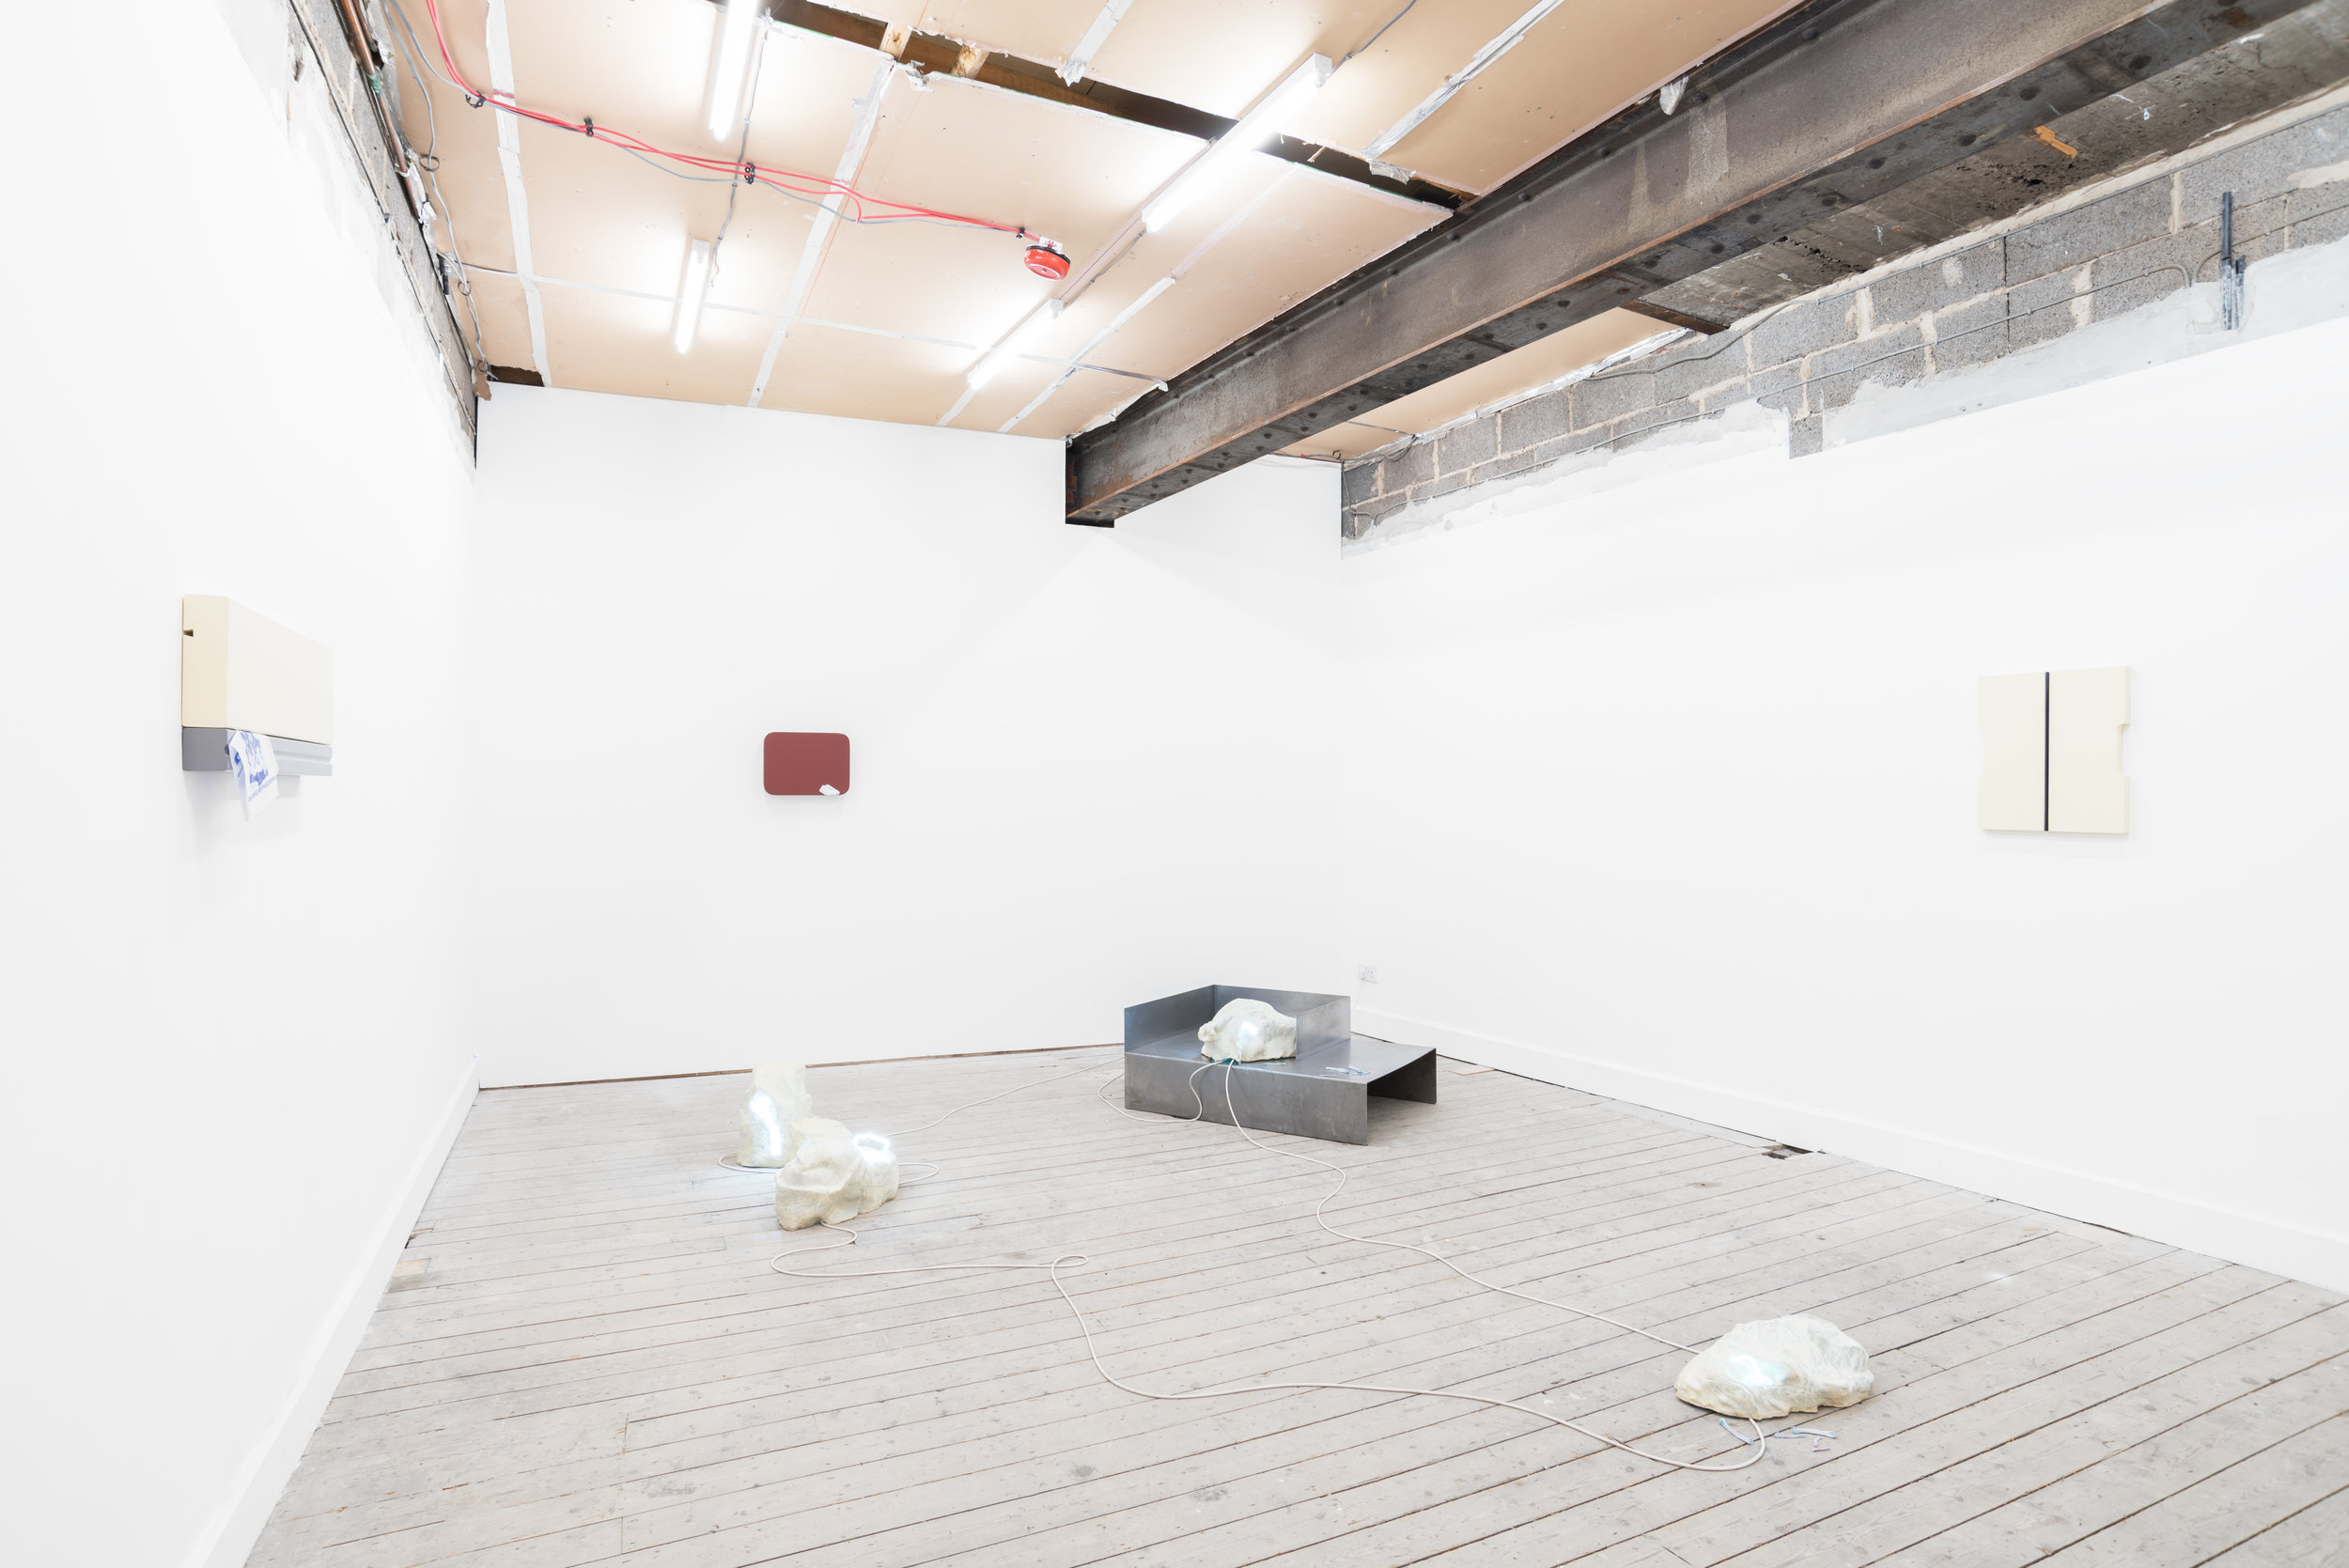 Pale Lithics (installation shot) 2017